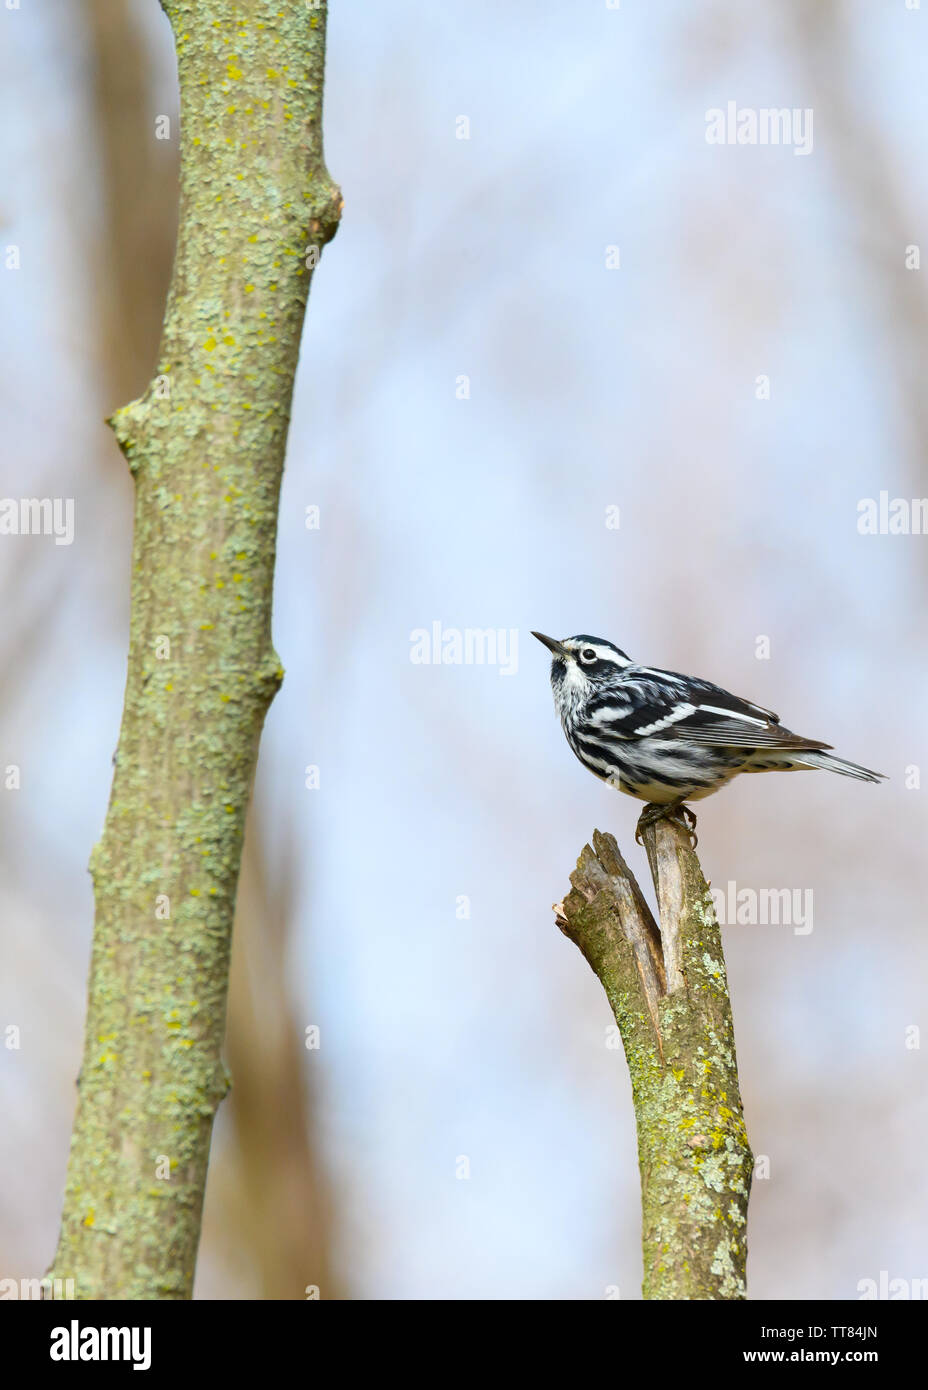 A migrating Black-and-White Warbler perches on a lichen-covered stump at Colonel Samuel Smith Park in Toronto, Ontario. Stock Photo